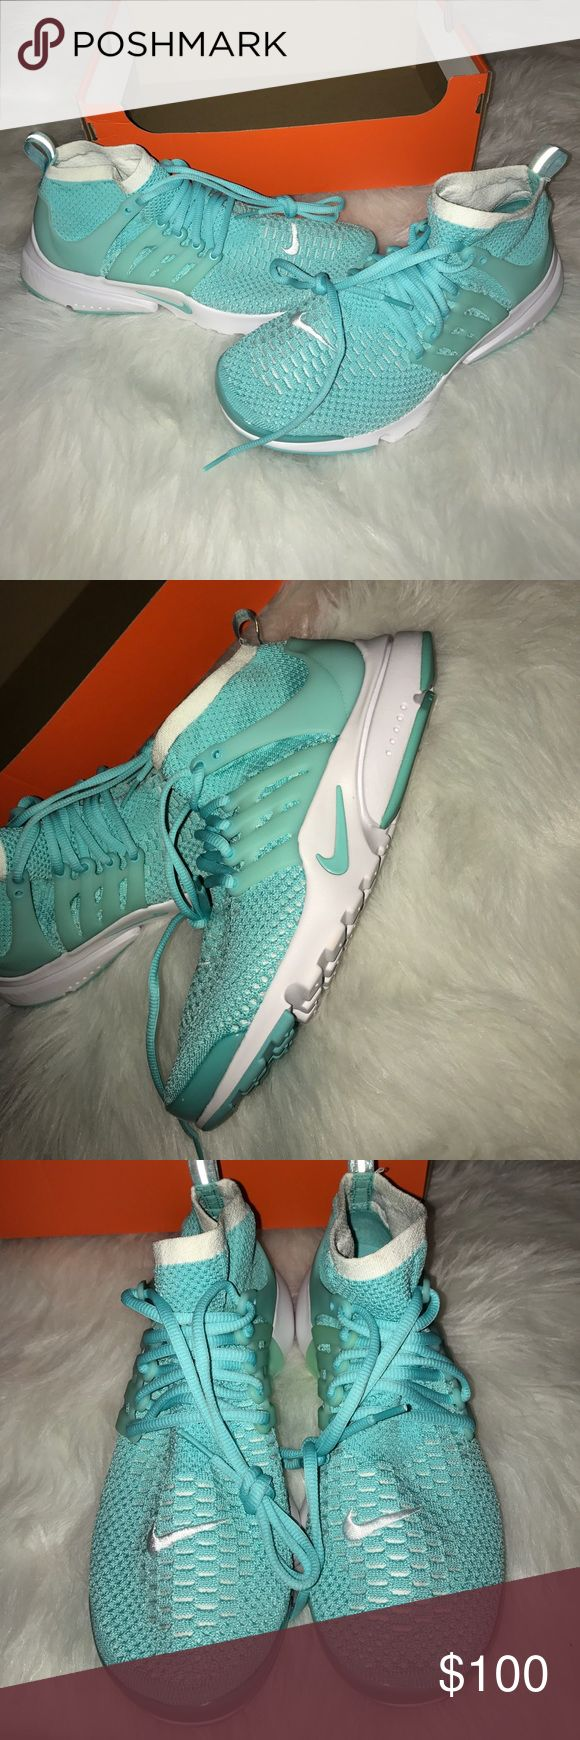 Home nike wmns air presto flyknit ultra midnight turquoise olive - New Nike Women S Sample Air Presto Size 10 5 Rare Nwt